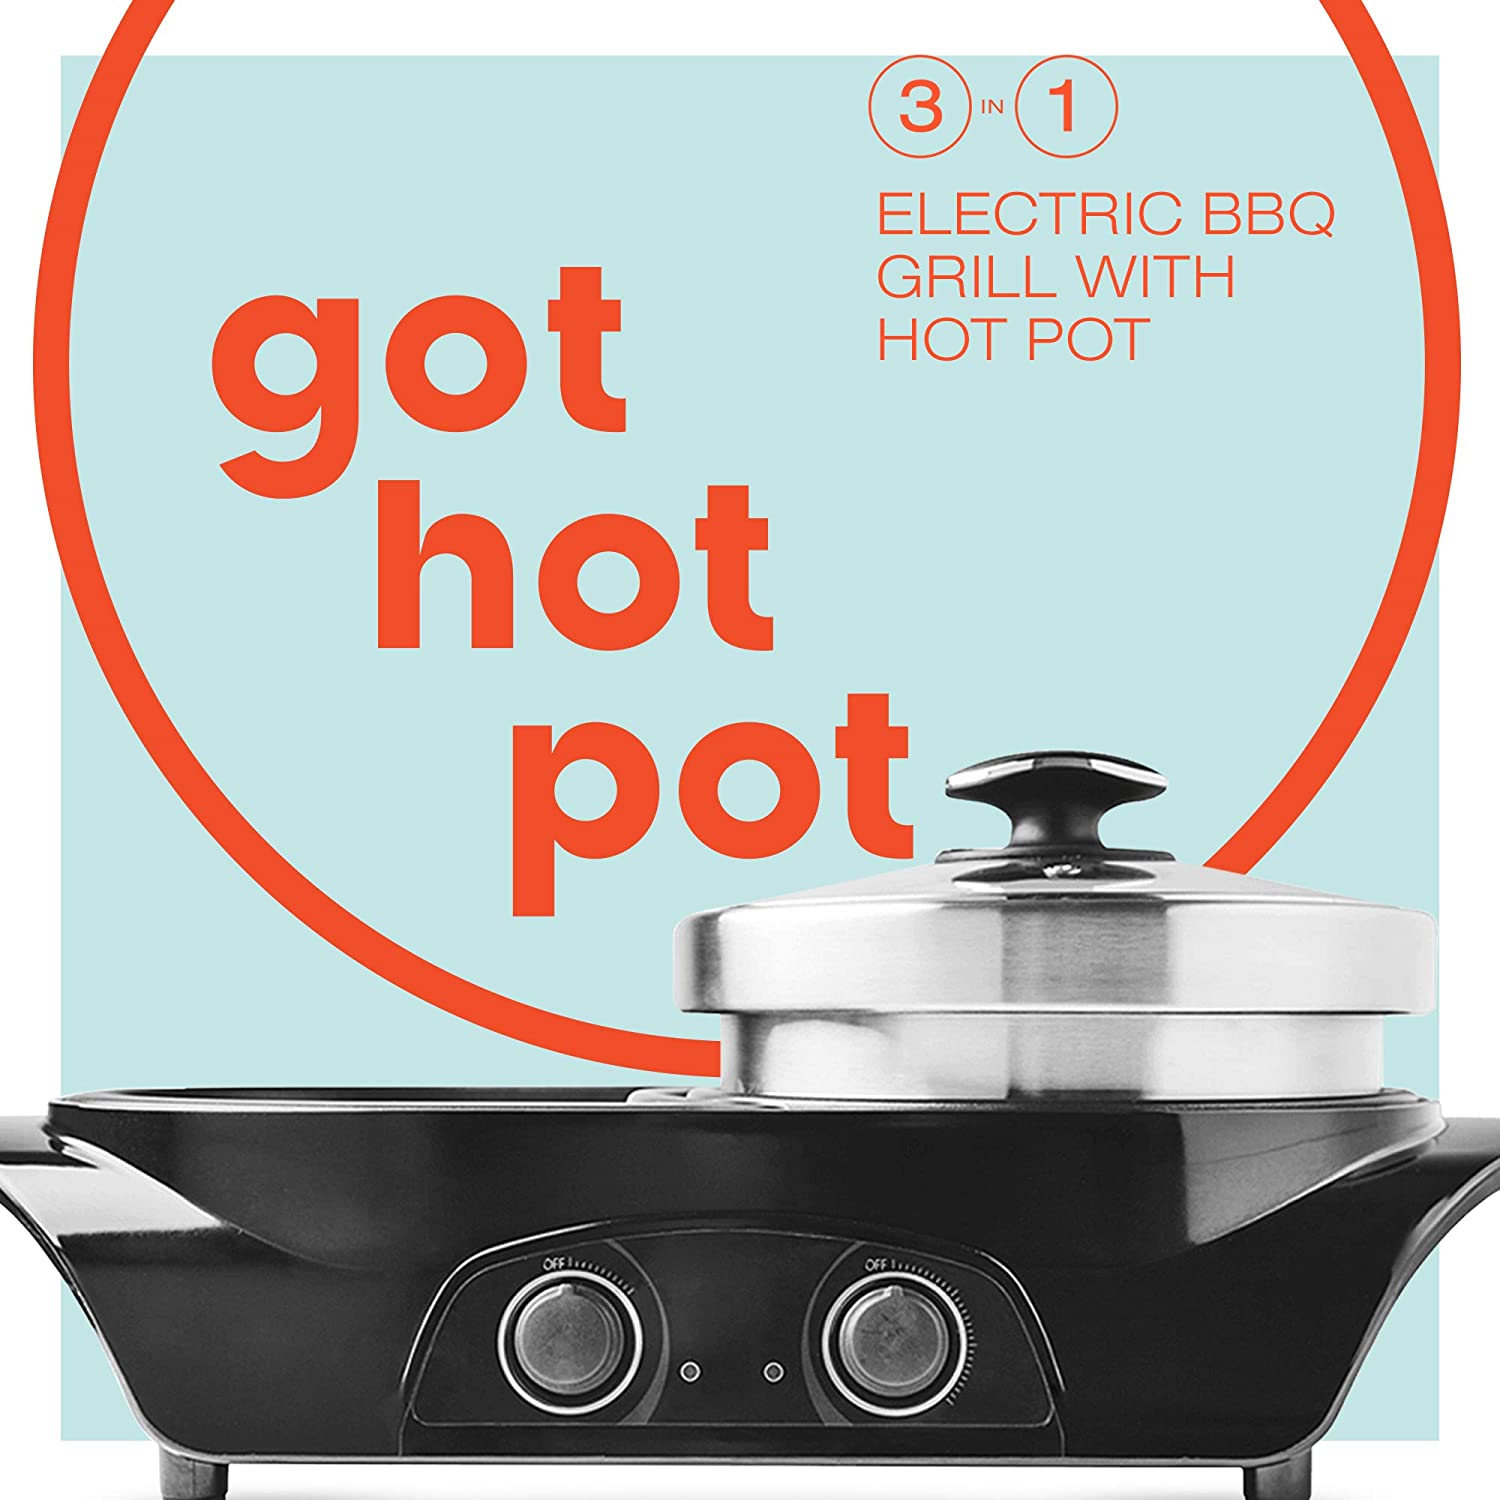 GOT HOT POT 3-in1 Electric Indoor Shabu Shabu Hot Pot with Bbq Grill | Interchangeable Stainless Steel Hot Pot Cooker or Frying Pan and a Non Stick Korean Bbq Teppanyaki Grill | Dual Heating Control GHP2400